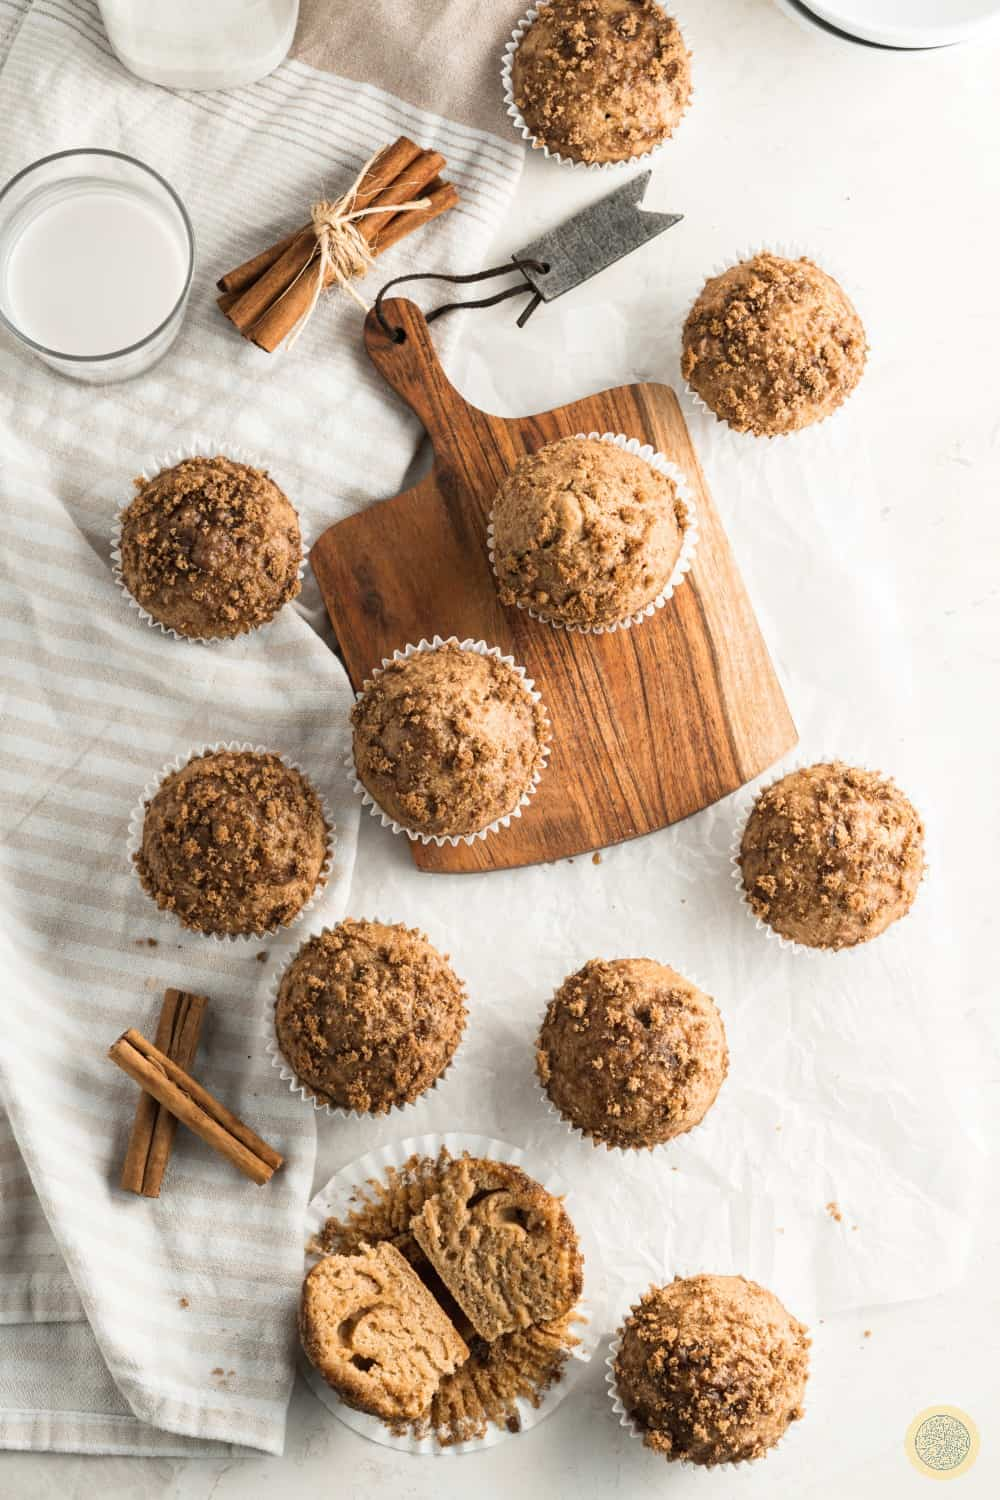 These muffins will do best when stored in an airtight container